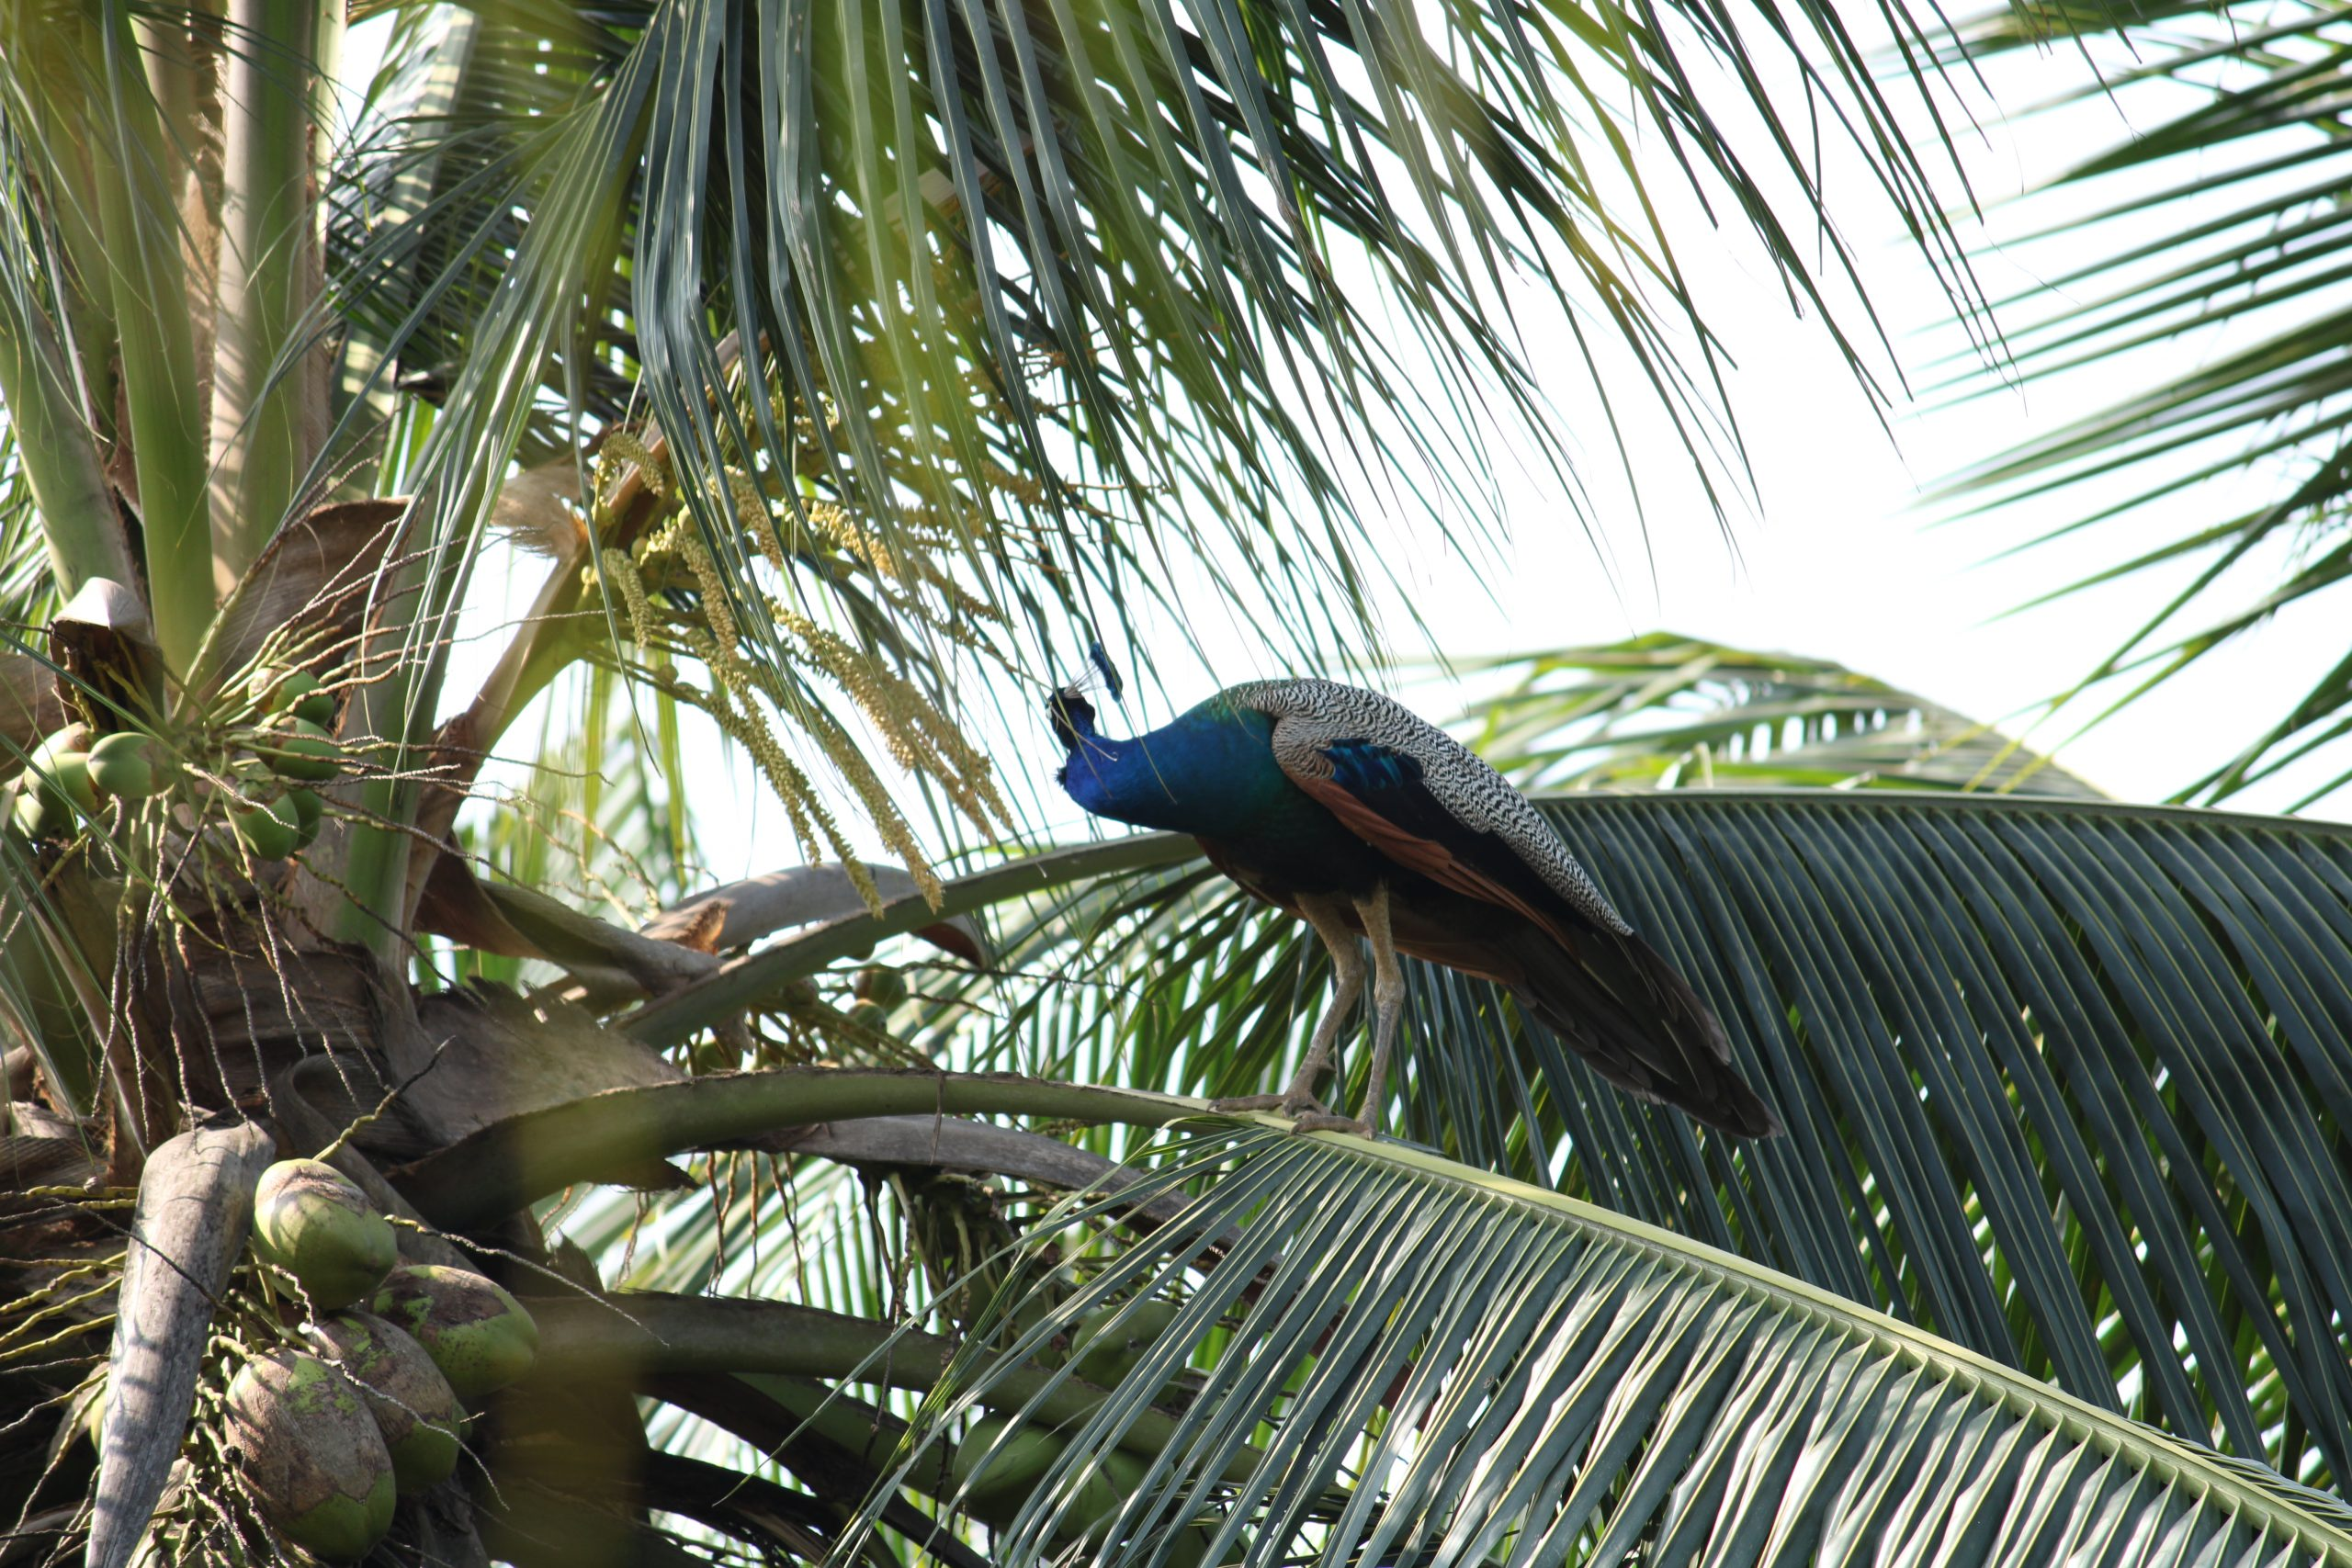 A peacock sitting on the coconut tree